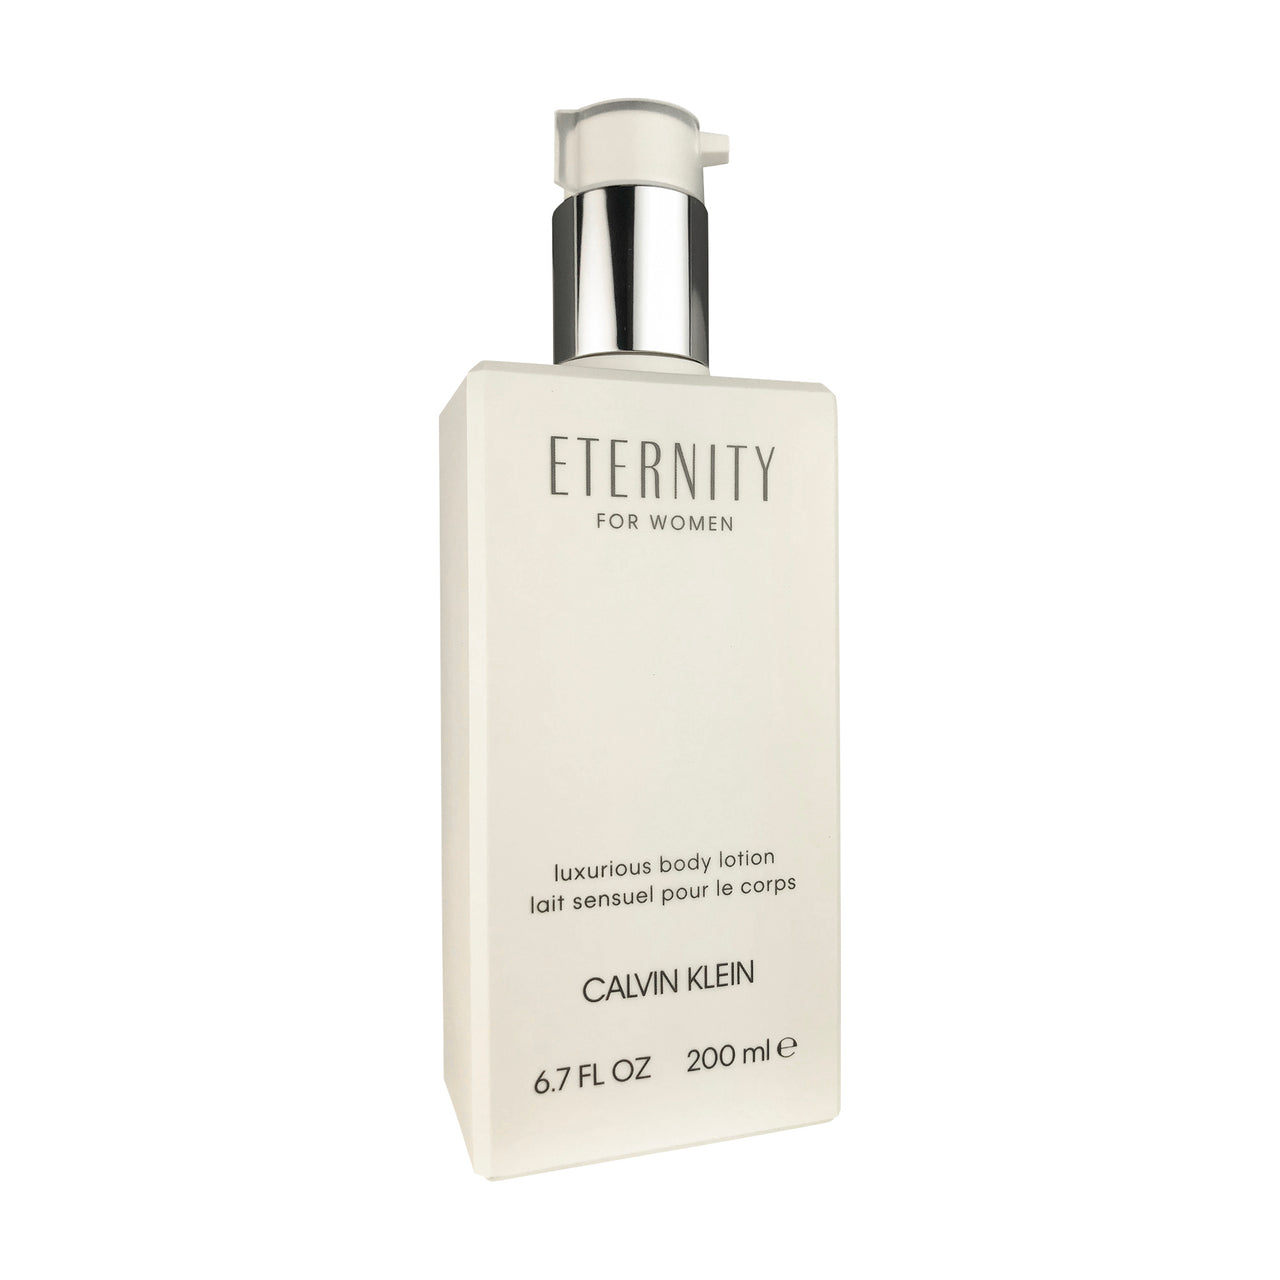 Eternity 6.7 oz Body Lotion for Women